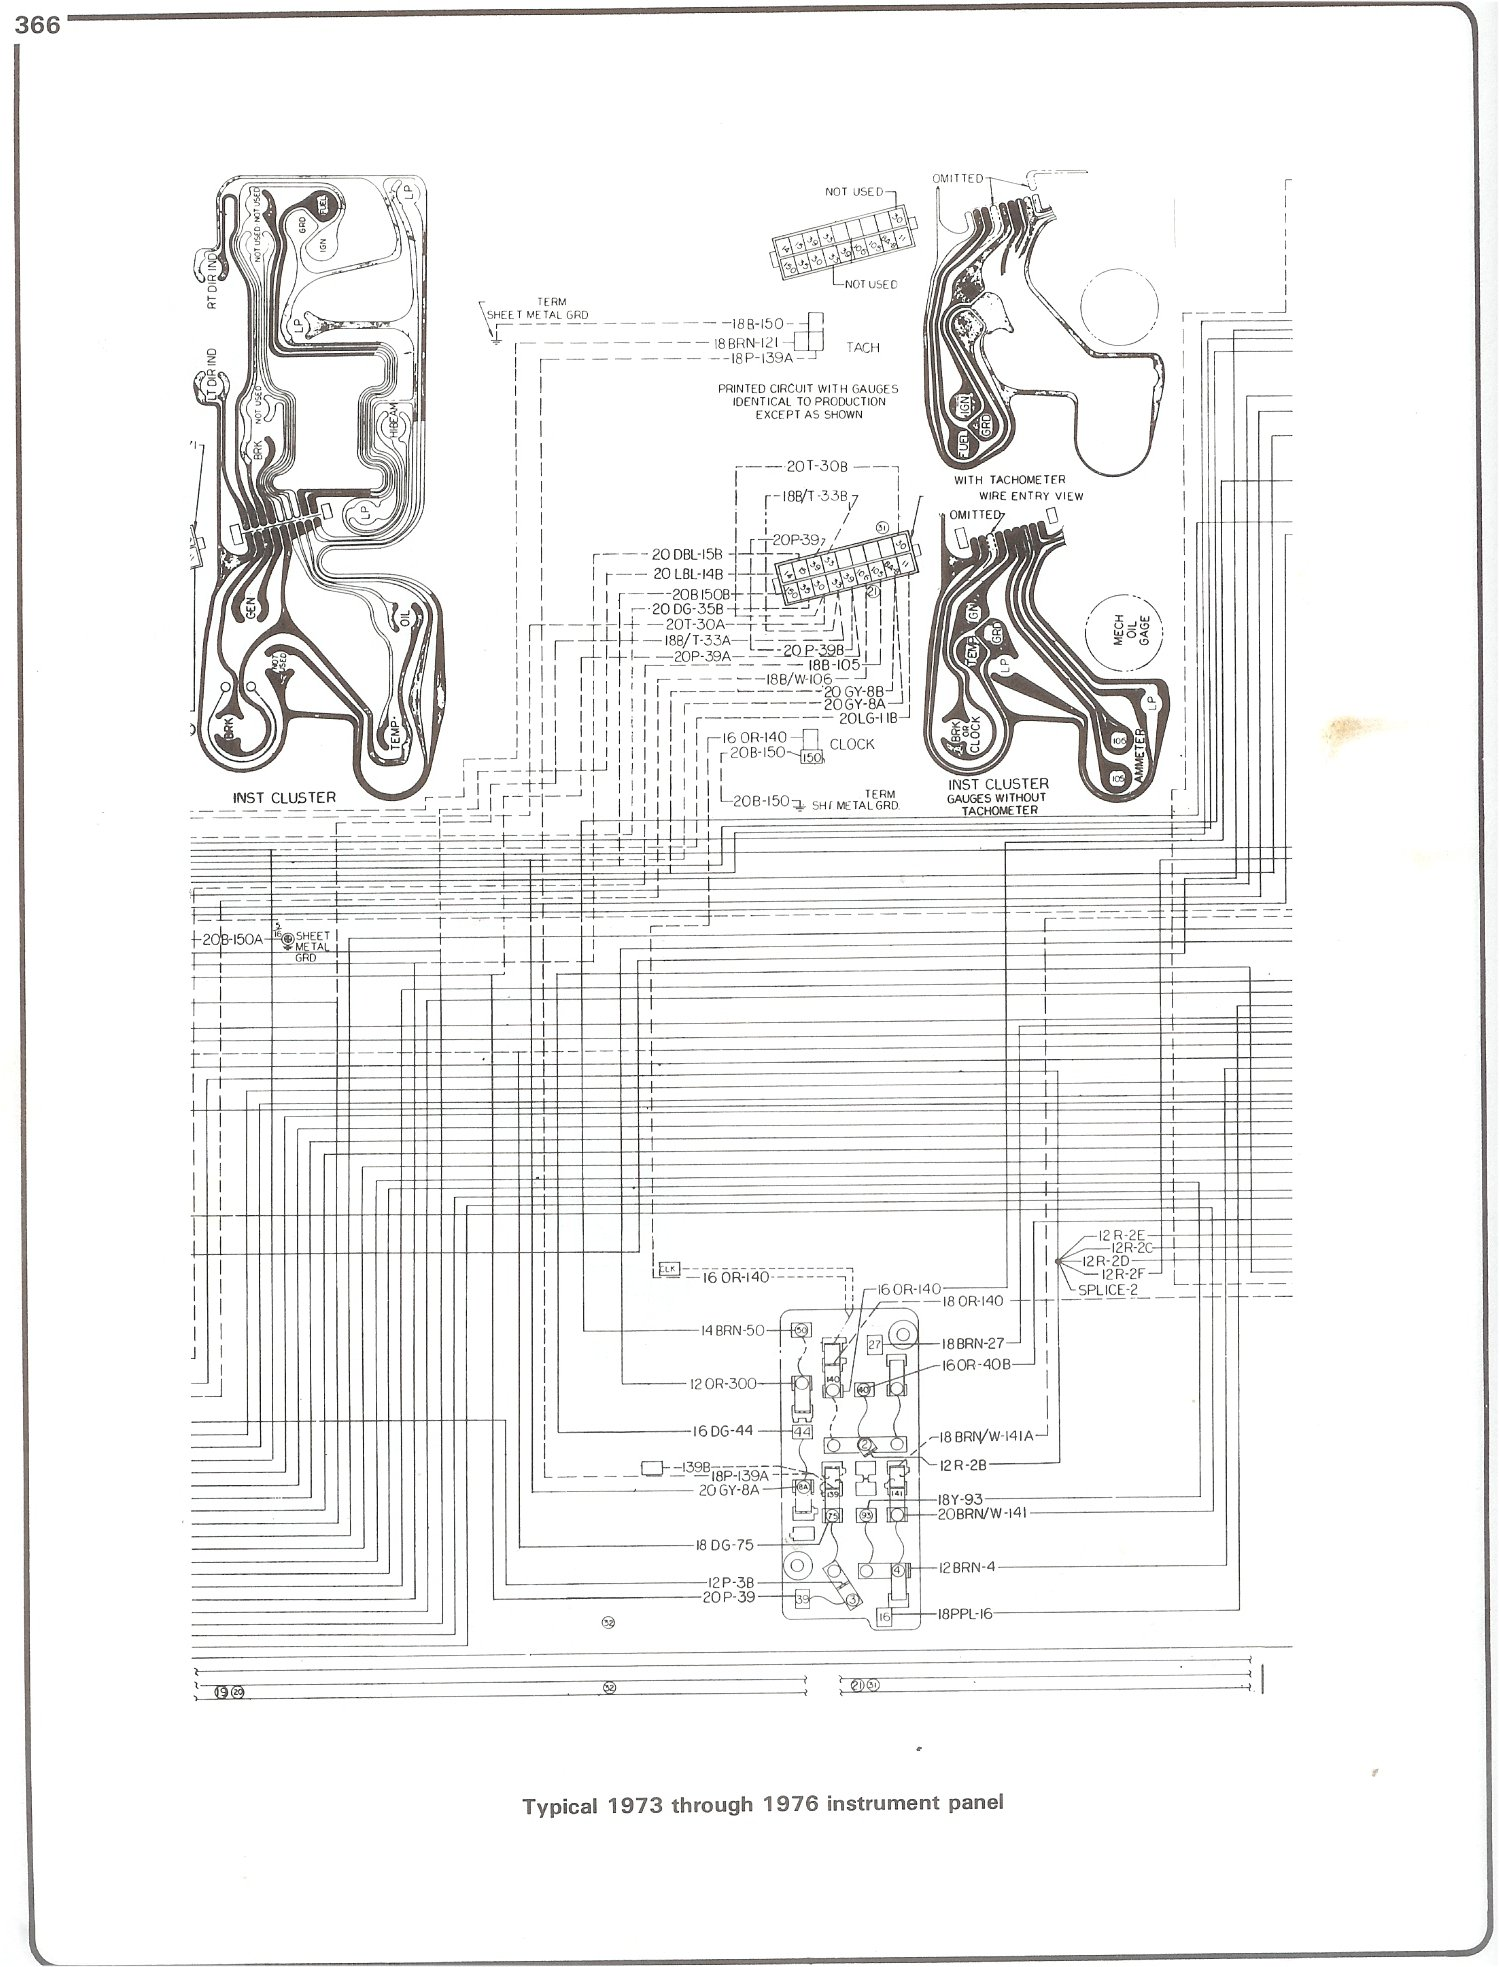 73 76_instrument complete 73 87 wiring diagrams 1978 chevy truck fuse box diagram at cita.asia